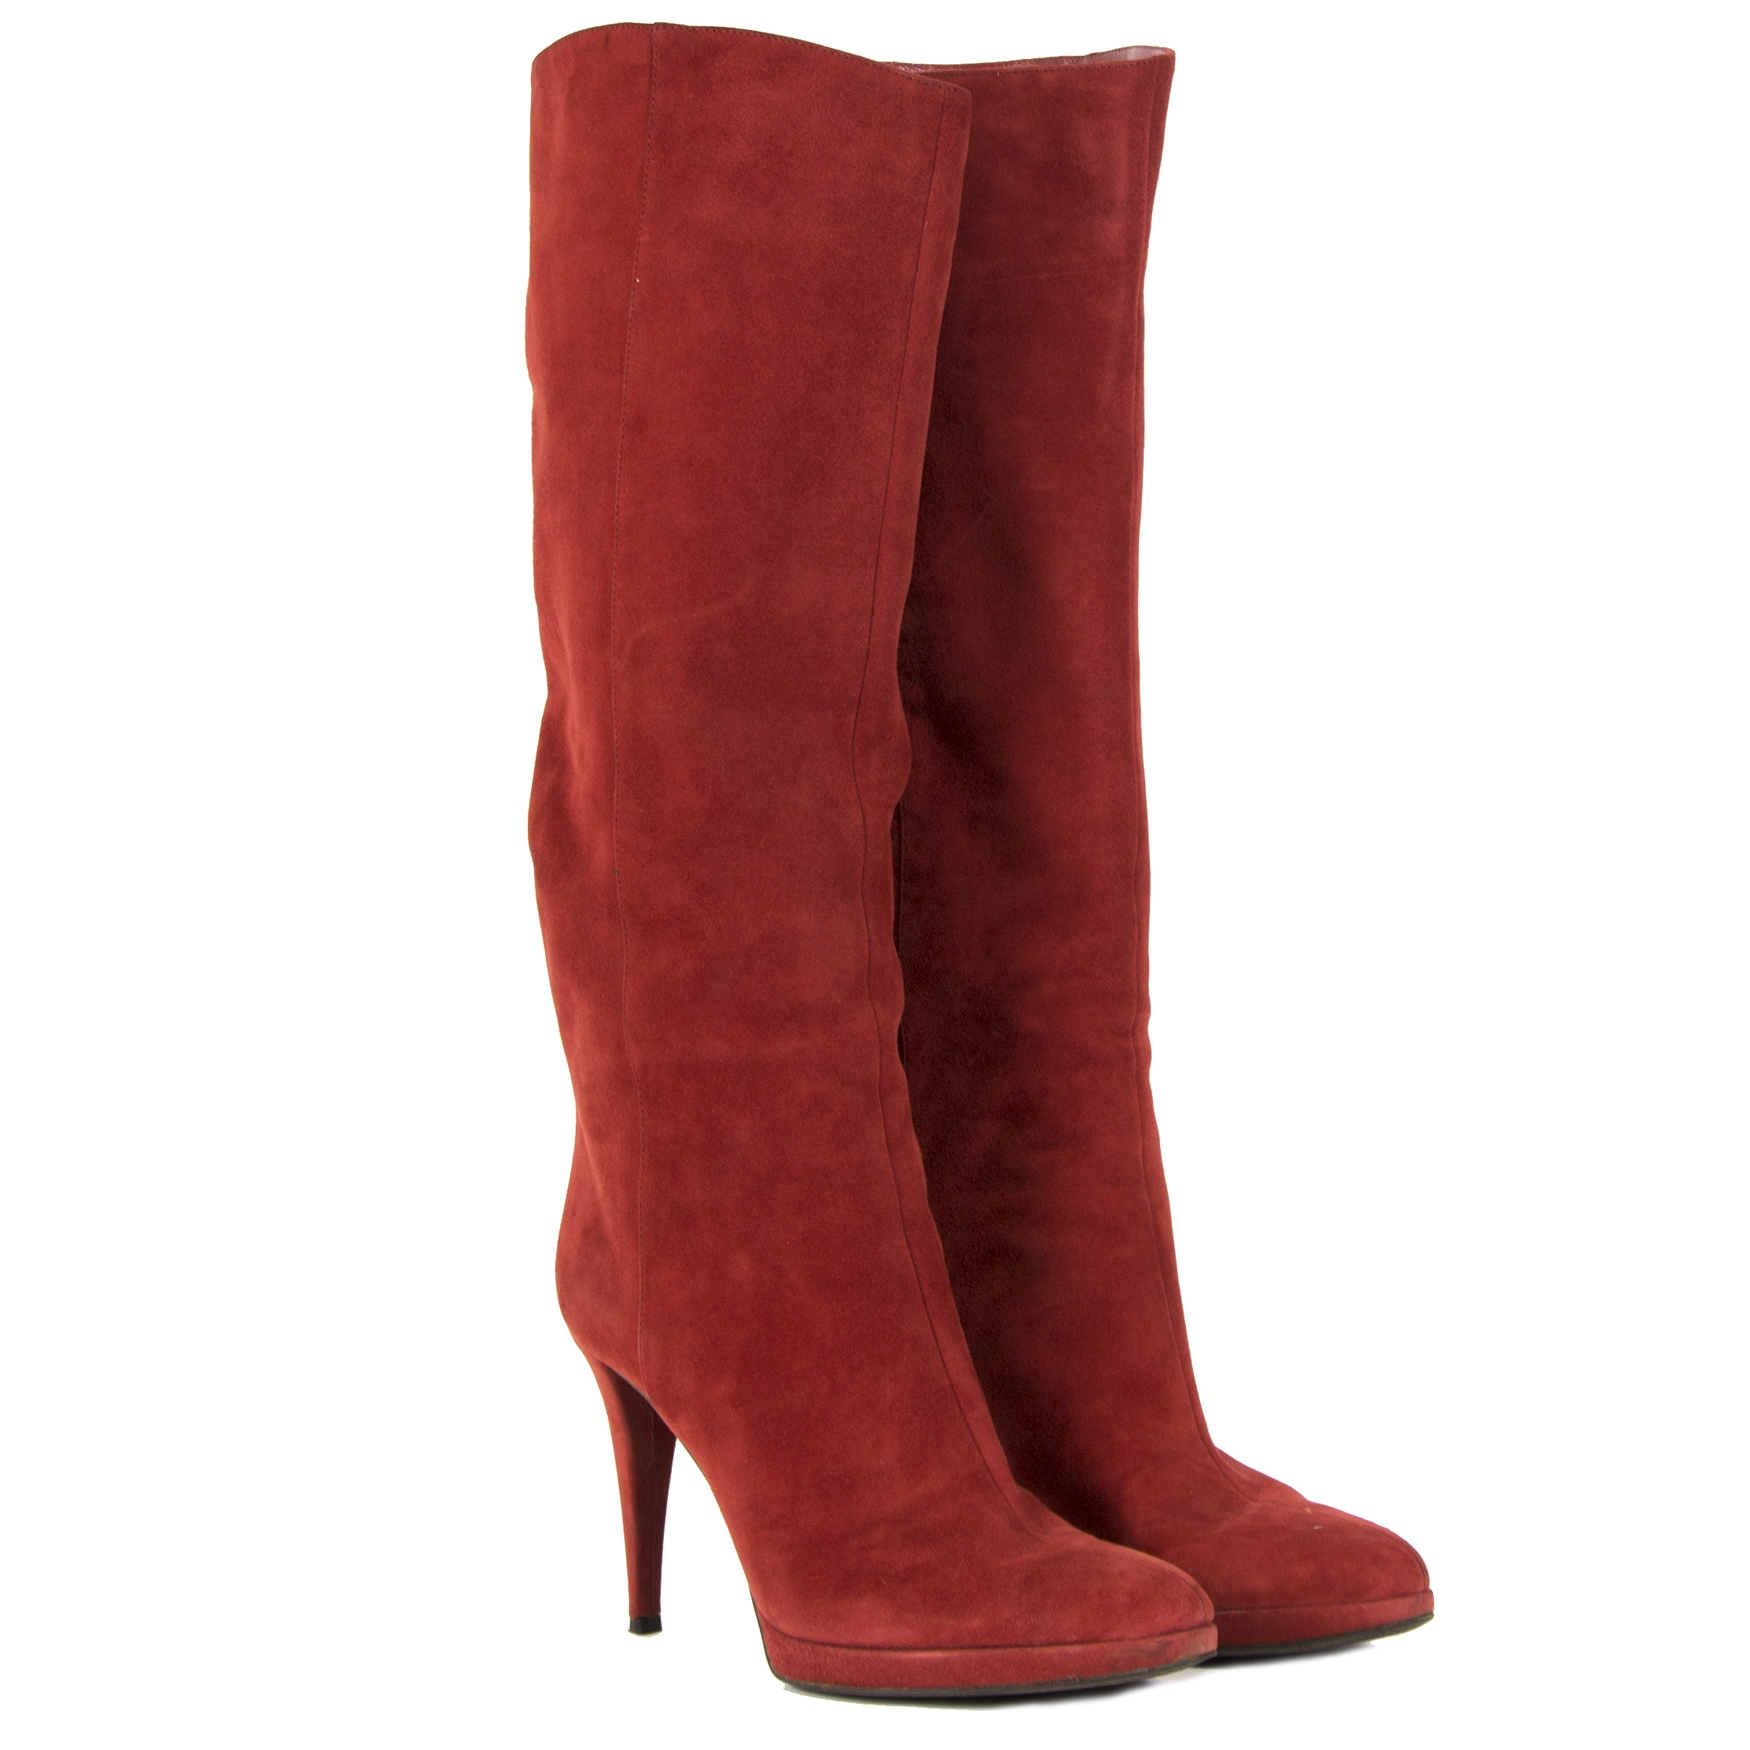 Sergio Rossi Red Suede High Boots - Size 41